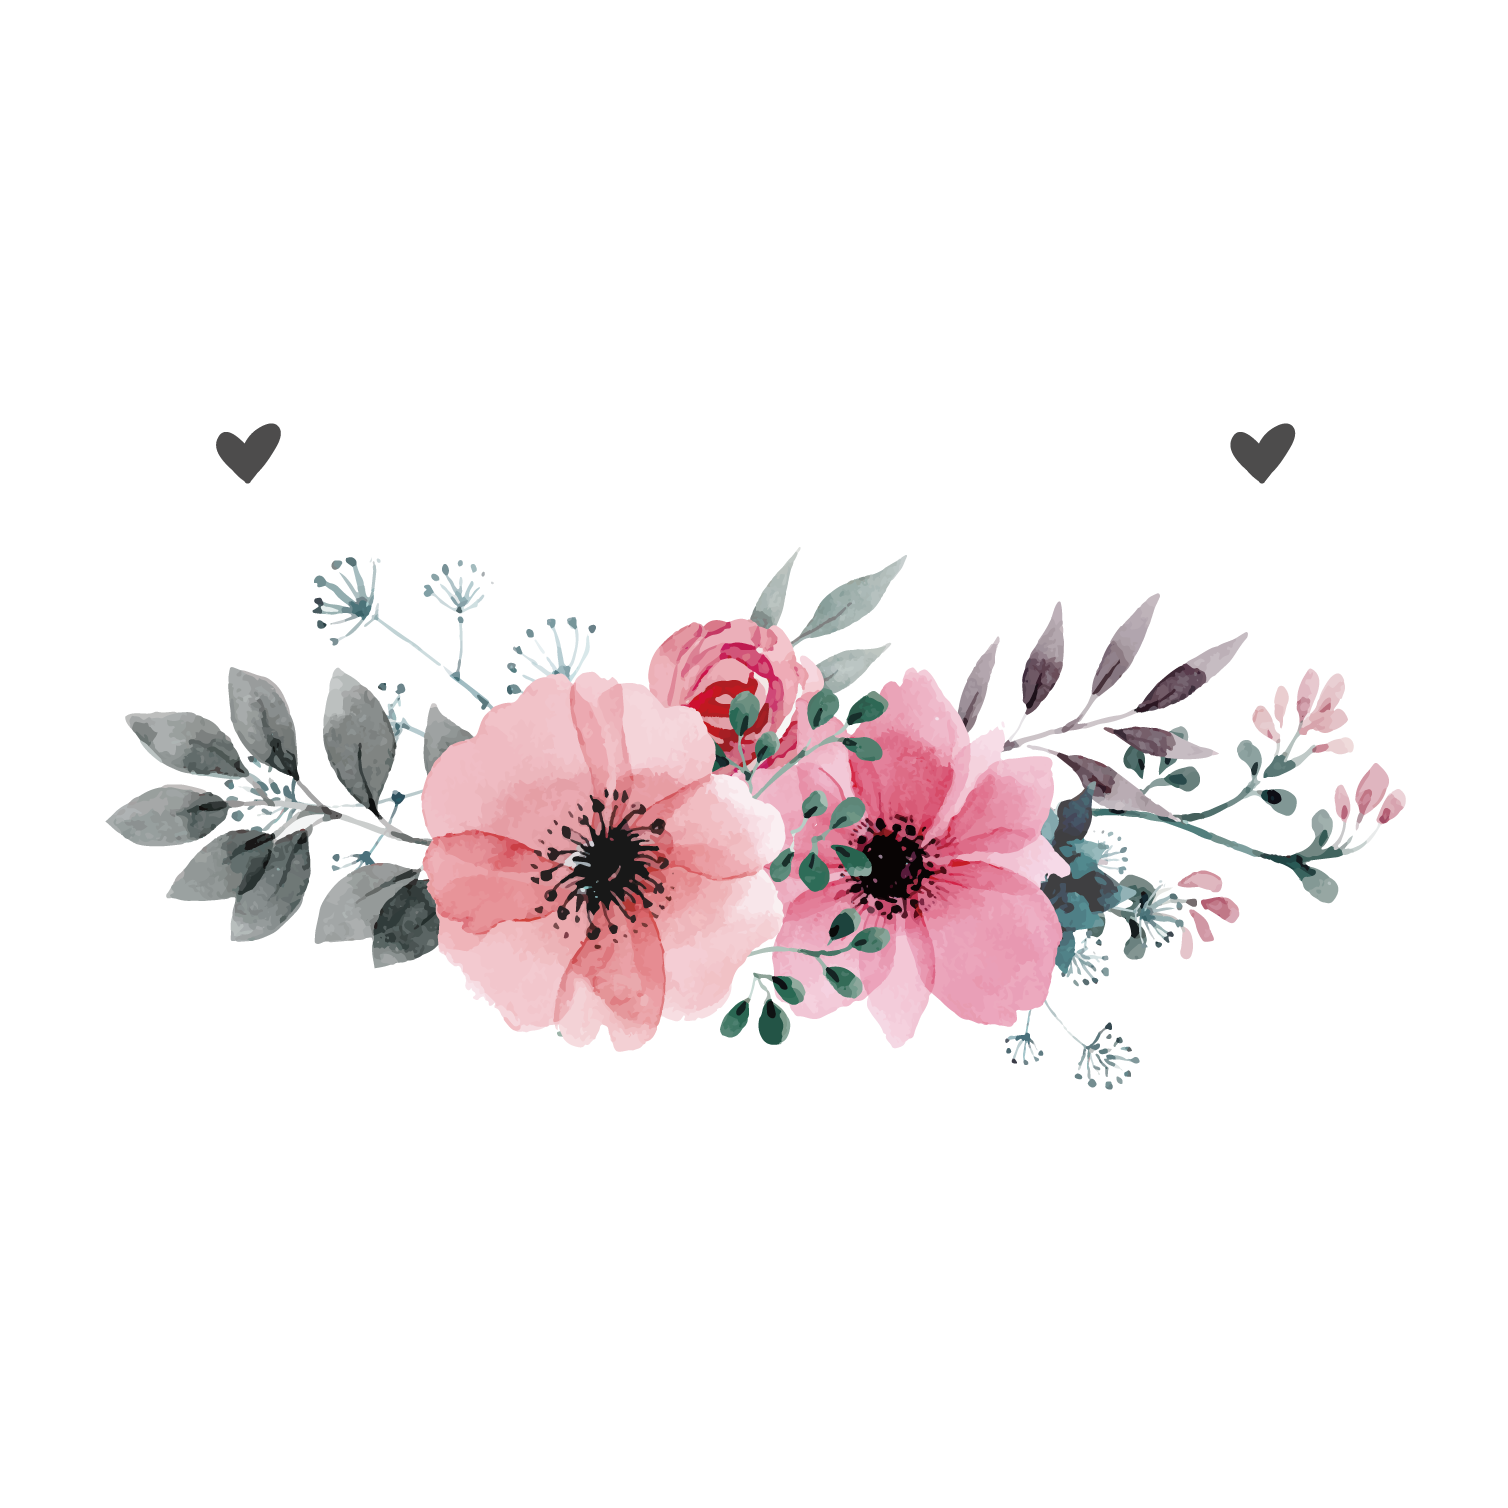 Flowers vector png. Wedding invitation flower pink